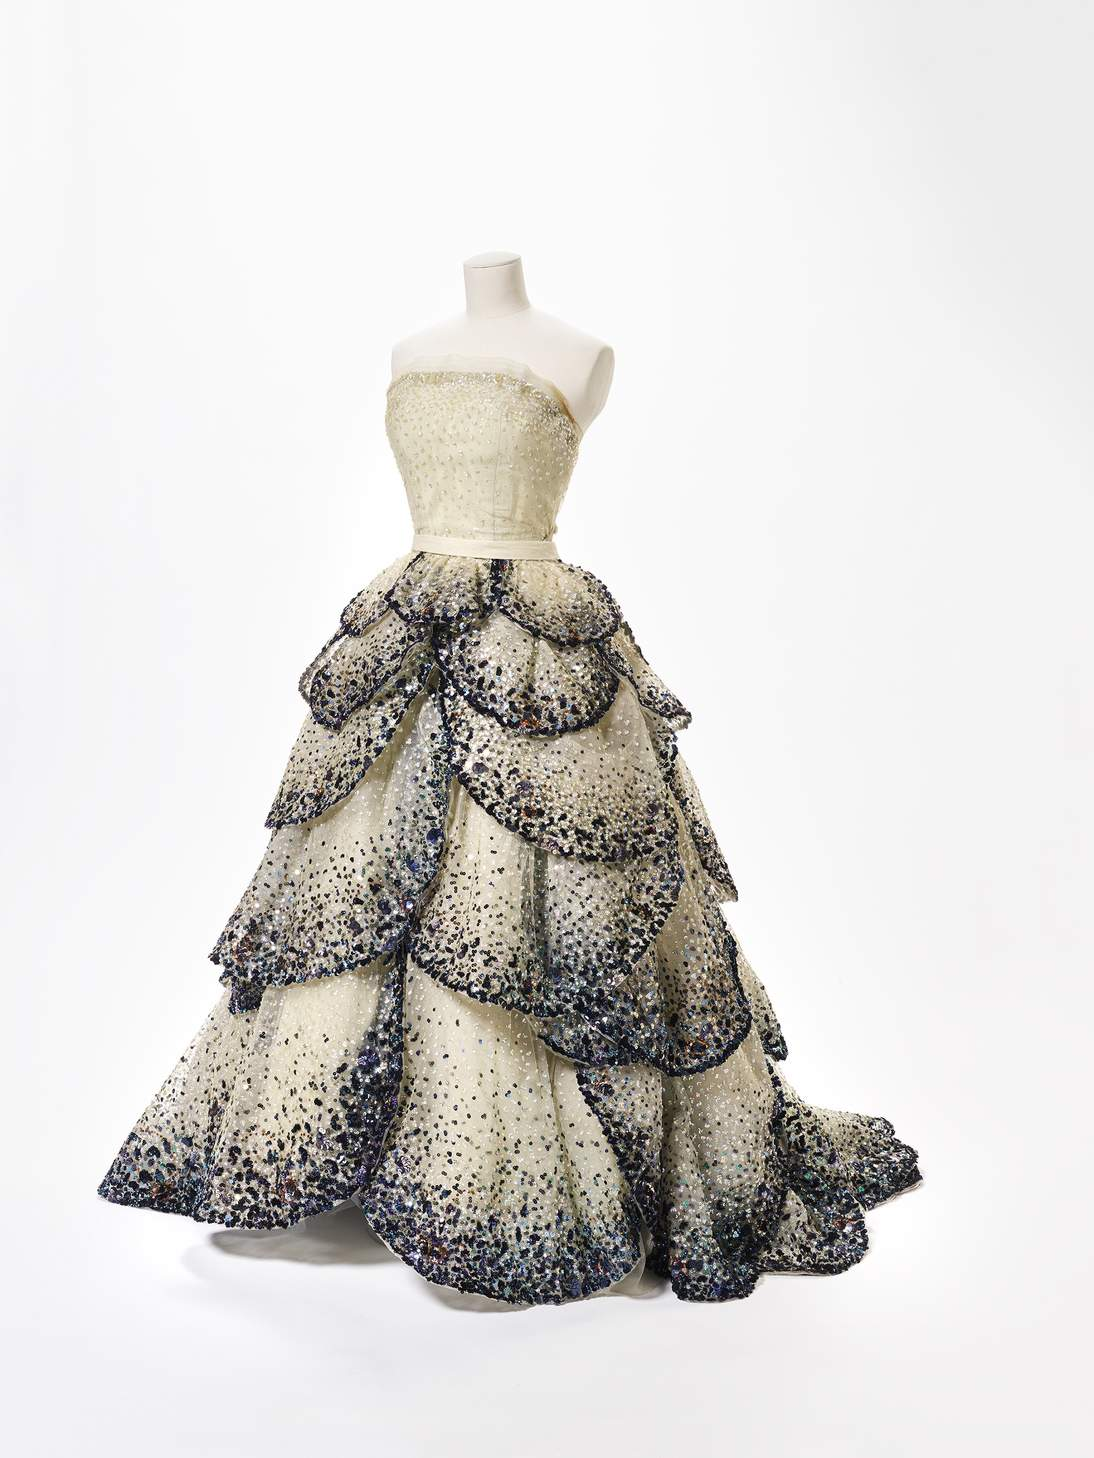 """Christian Dior, Evening dress, """"Junon,"""" Fall‒Winter, 1949. France. Silk tulle with sequin embroidery, silk gros de Tours, and horsehair stiffening. Fine Arts Museums of San Francisco, Gift of I. Magnin & Company, 49.25.2a‒b"""